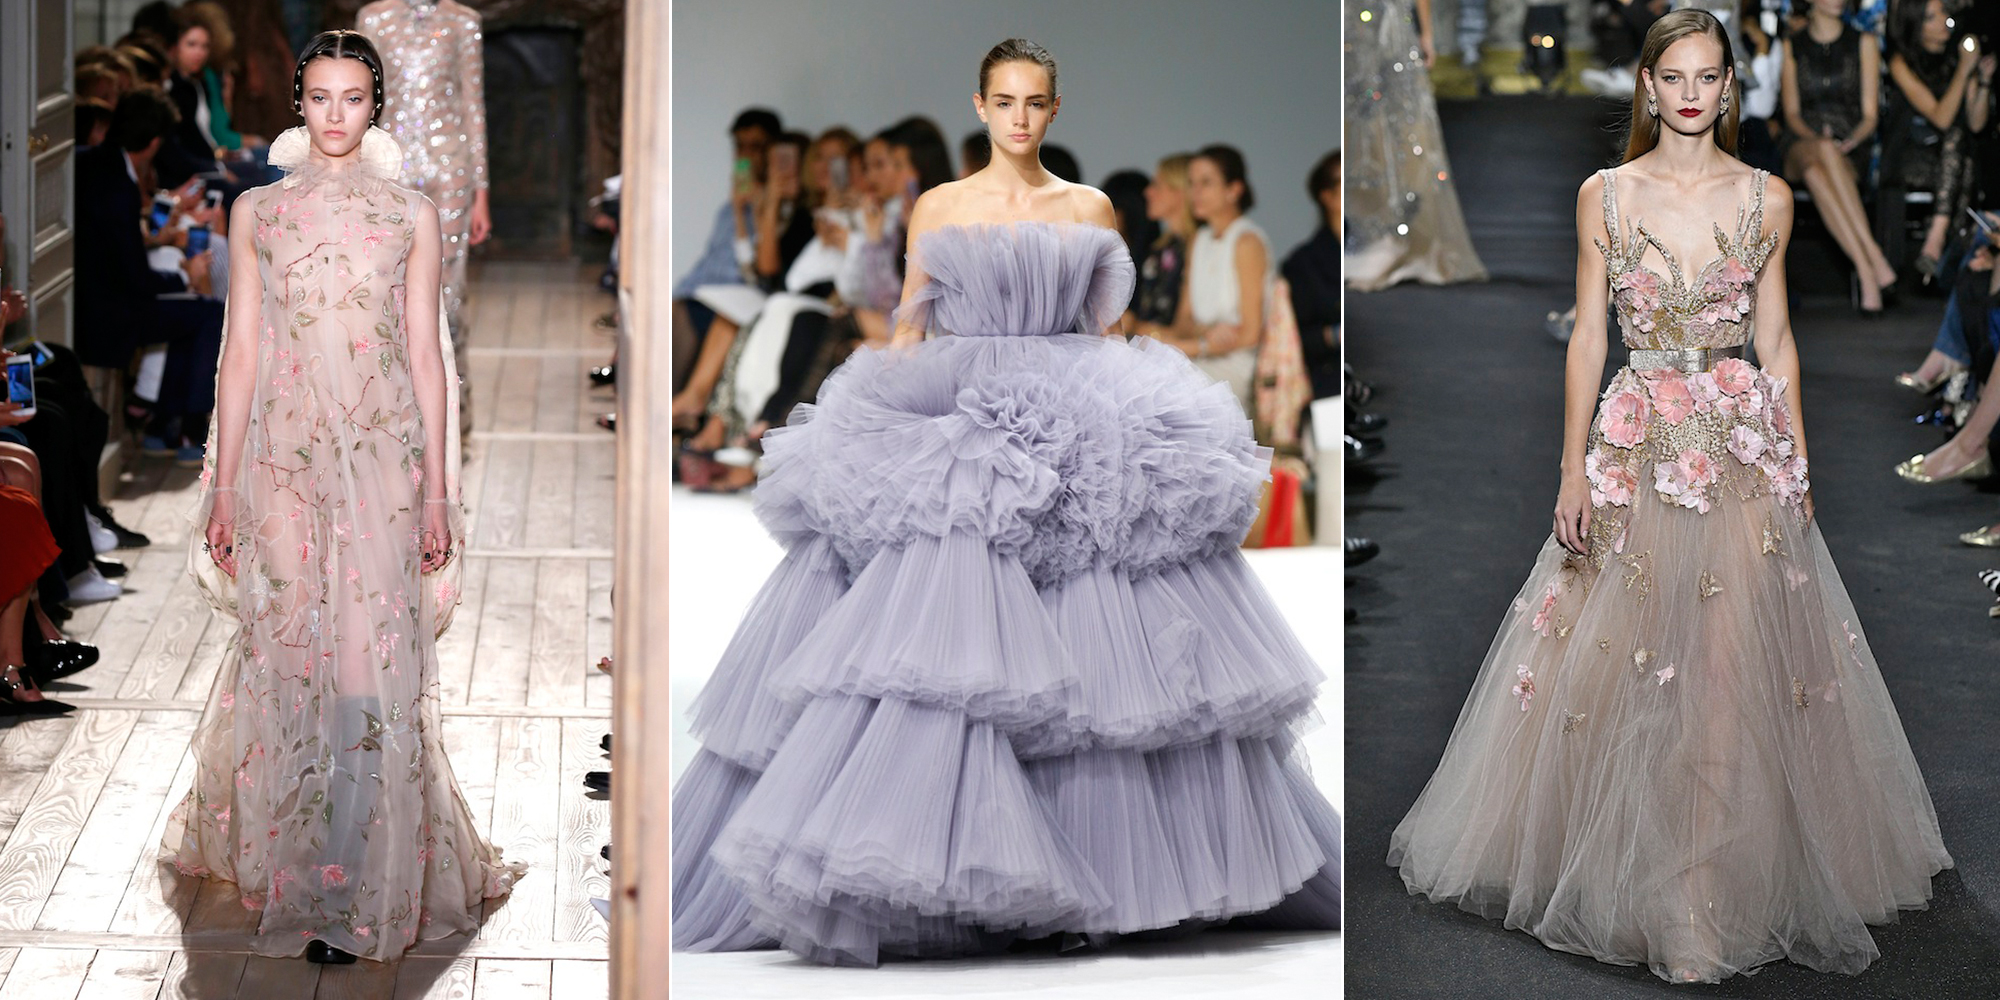 Wedding dress inspiration from haute couture fashion week aw16 for Haute couture clothing